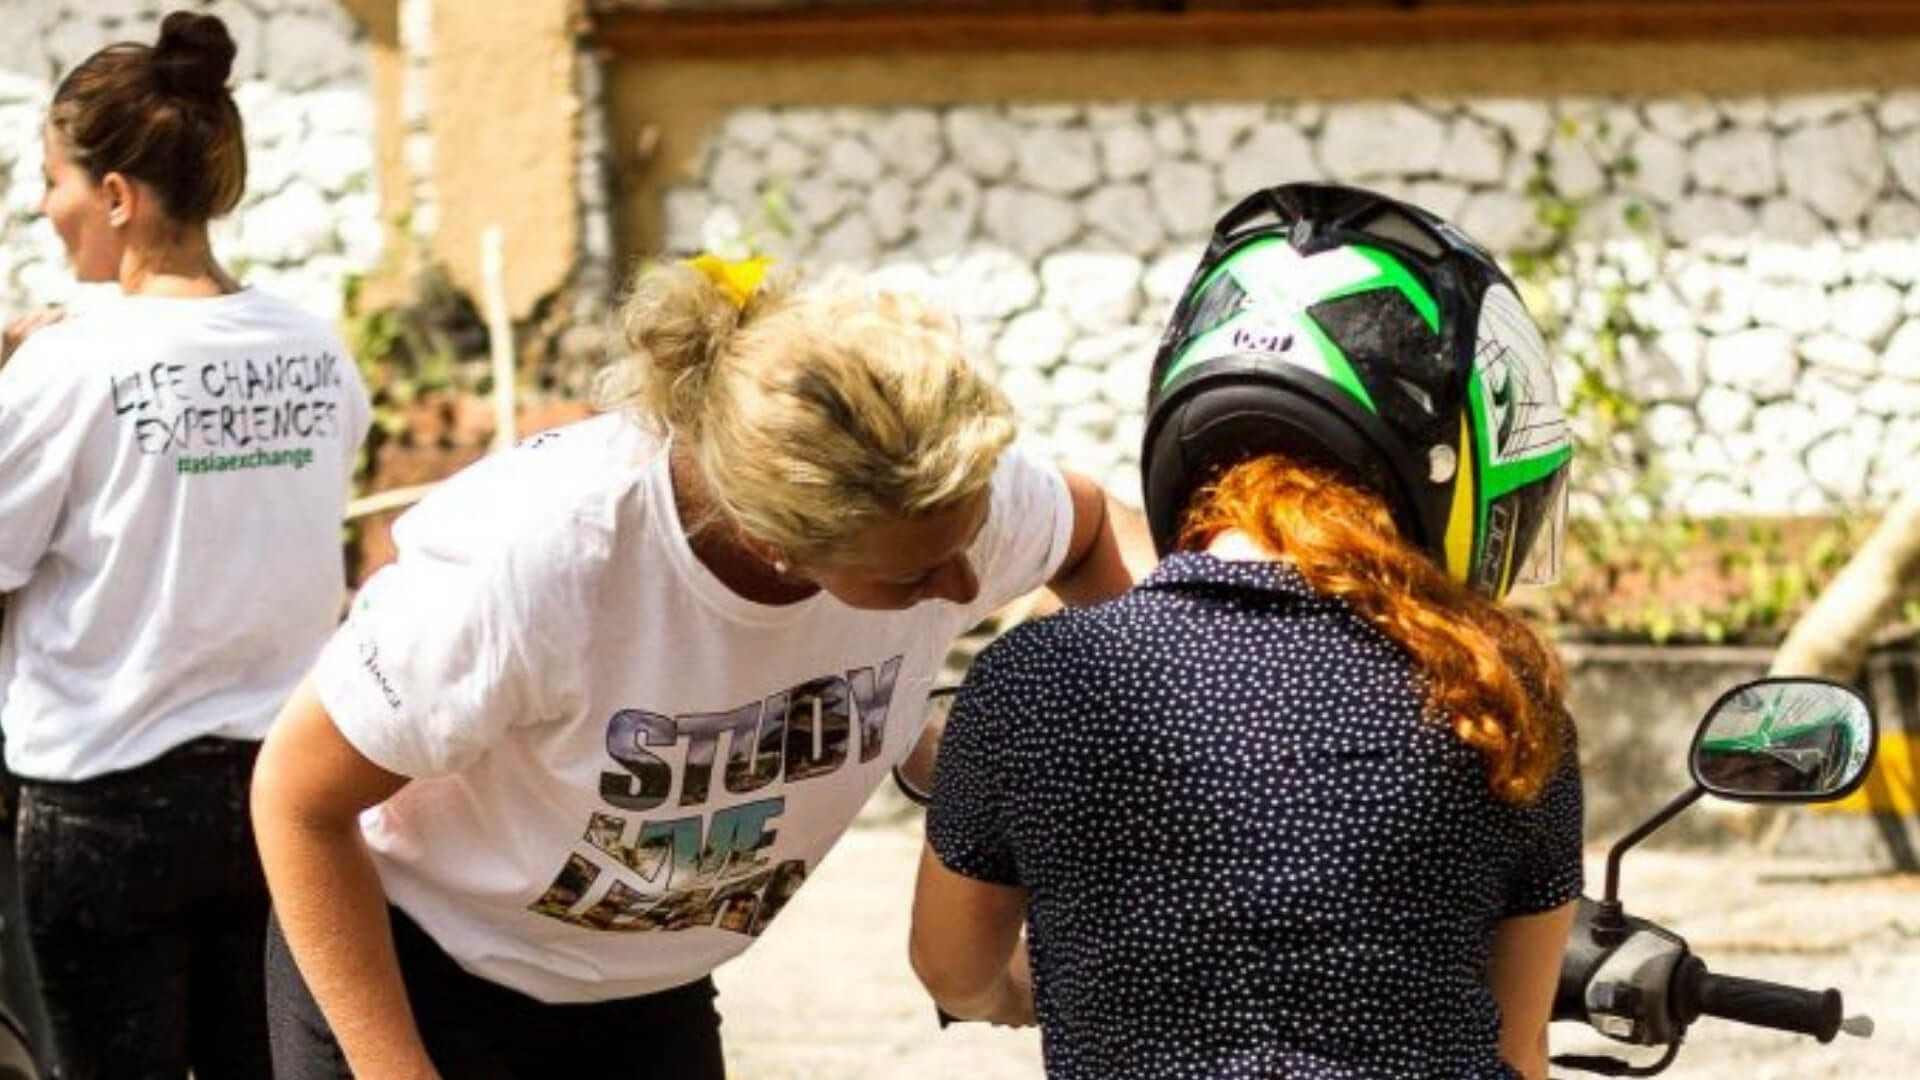 A person in white t-shirt with text is learning a student how to drive scooter in Bali.